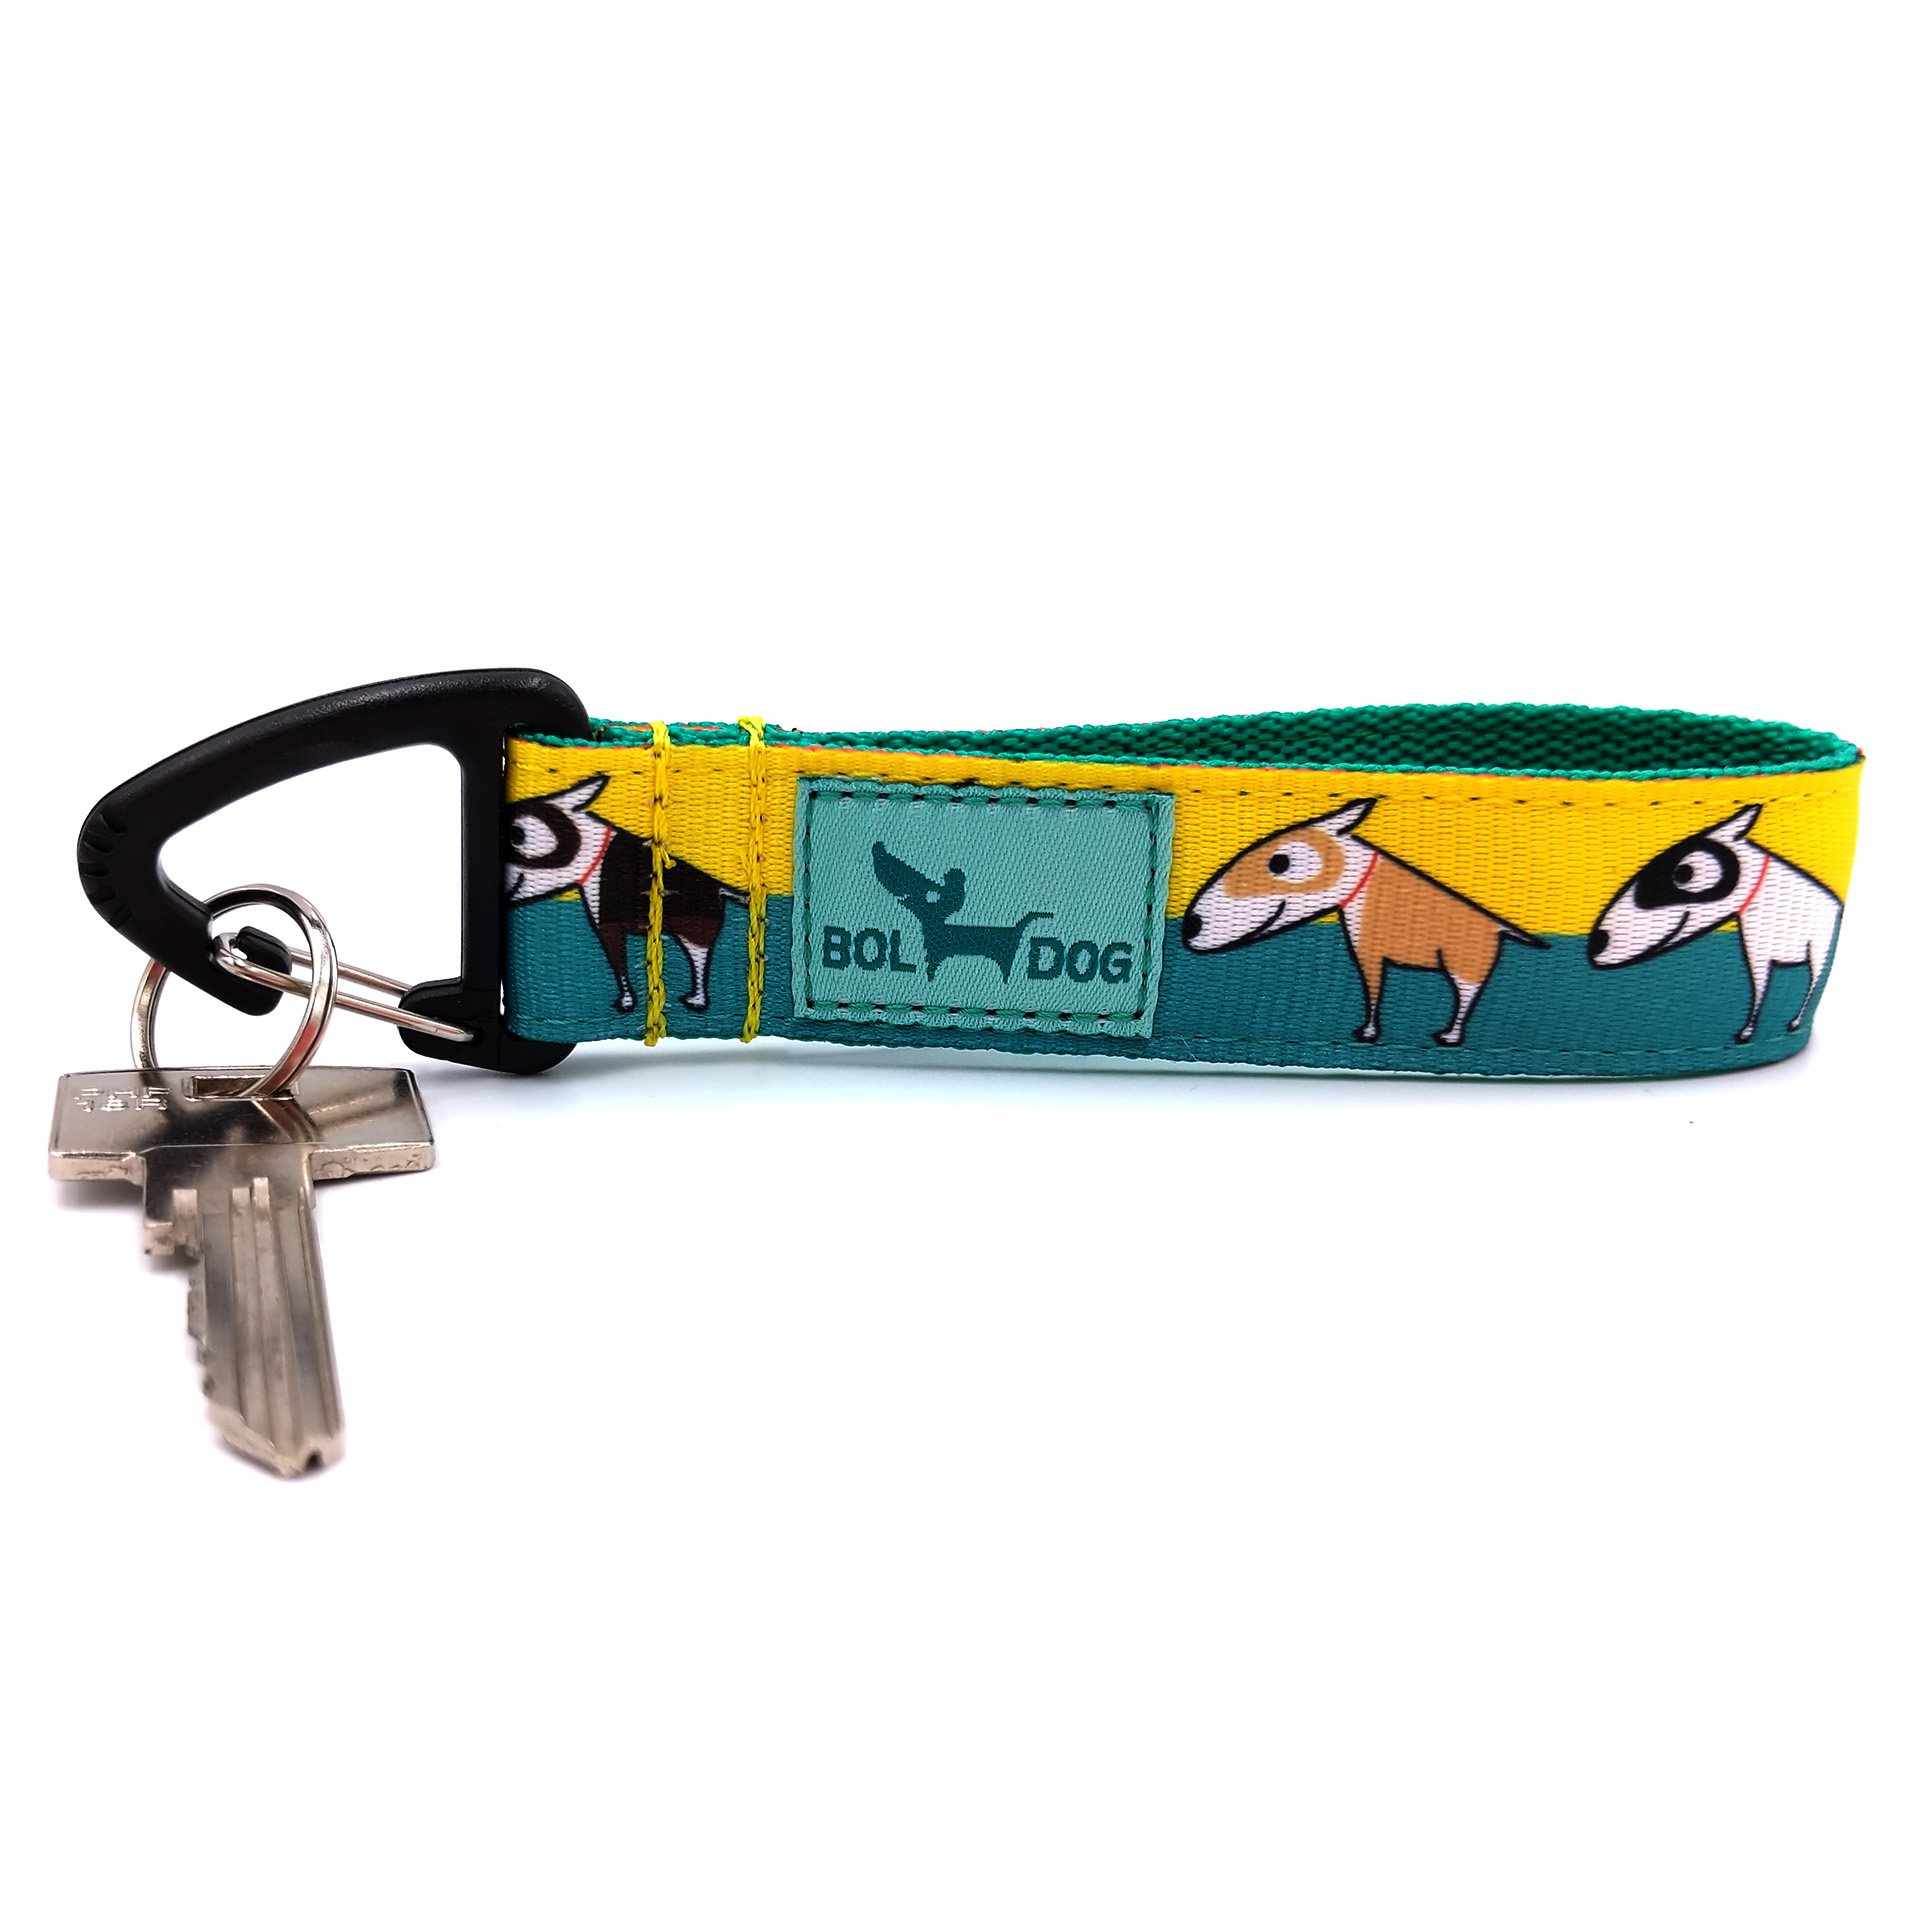 Bull terrier key holder